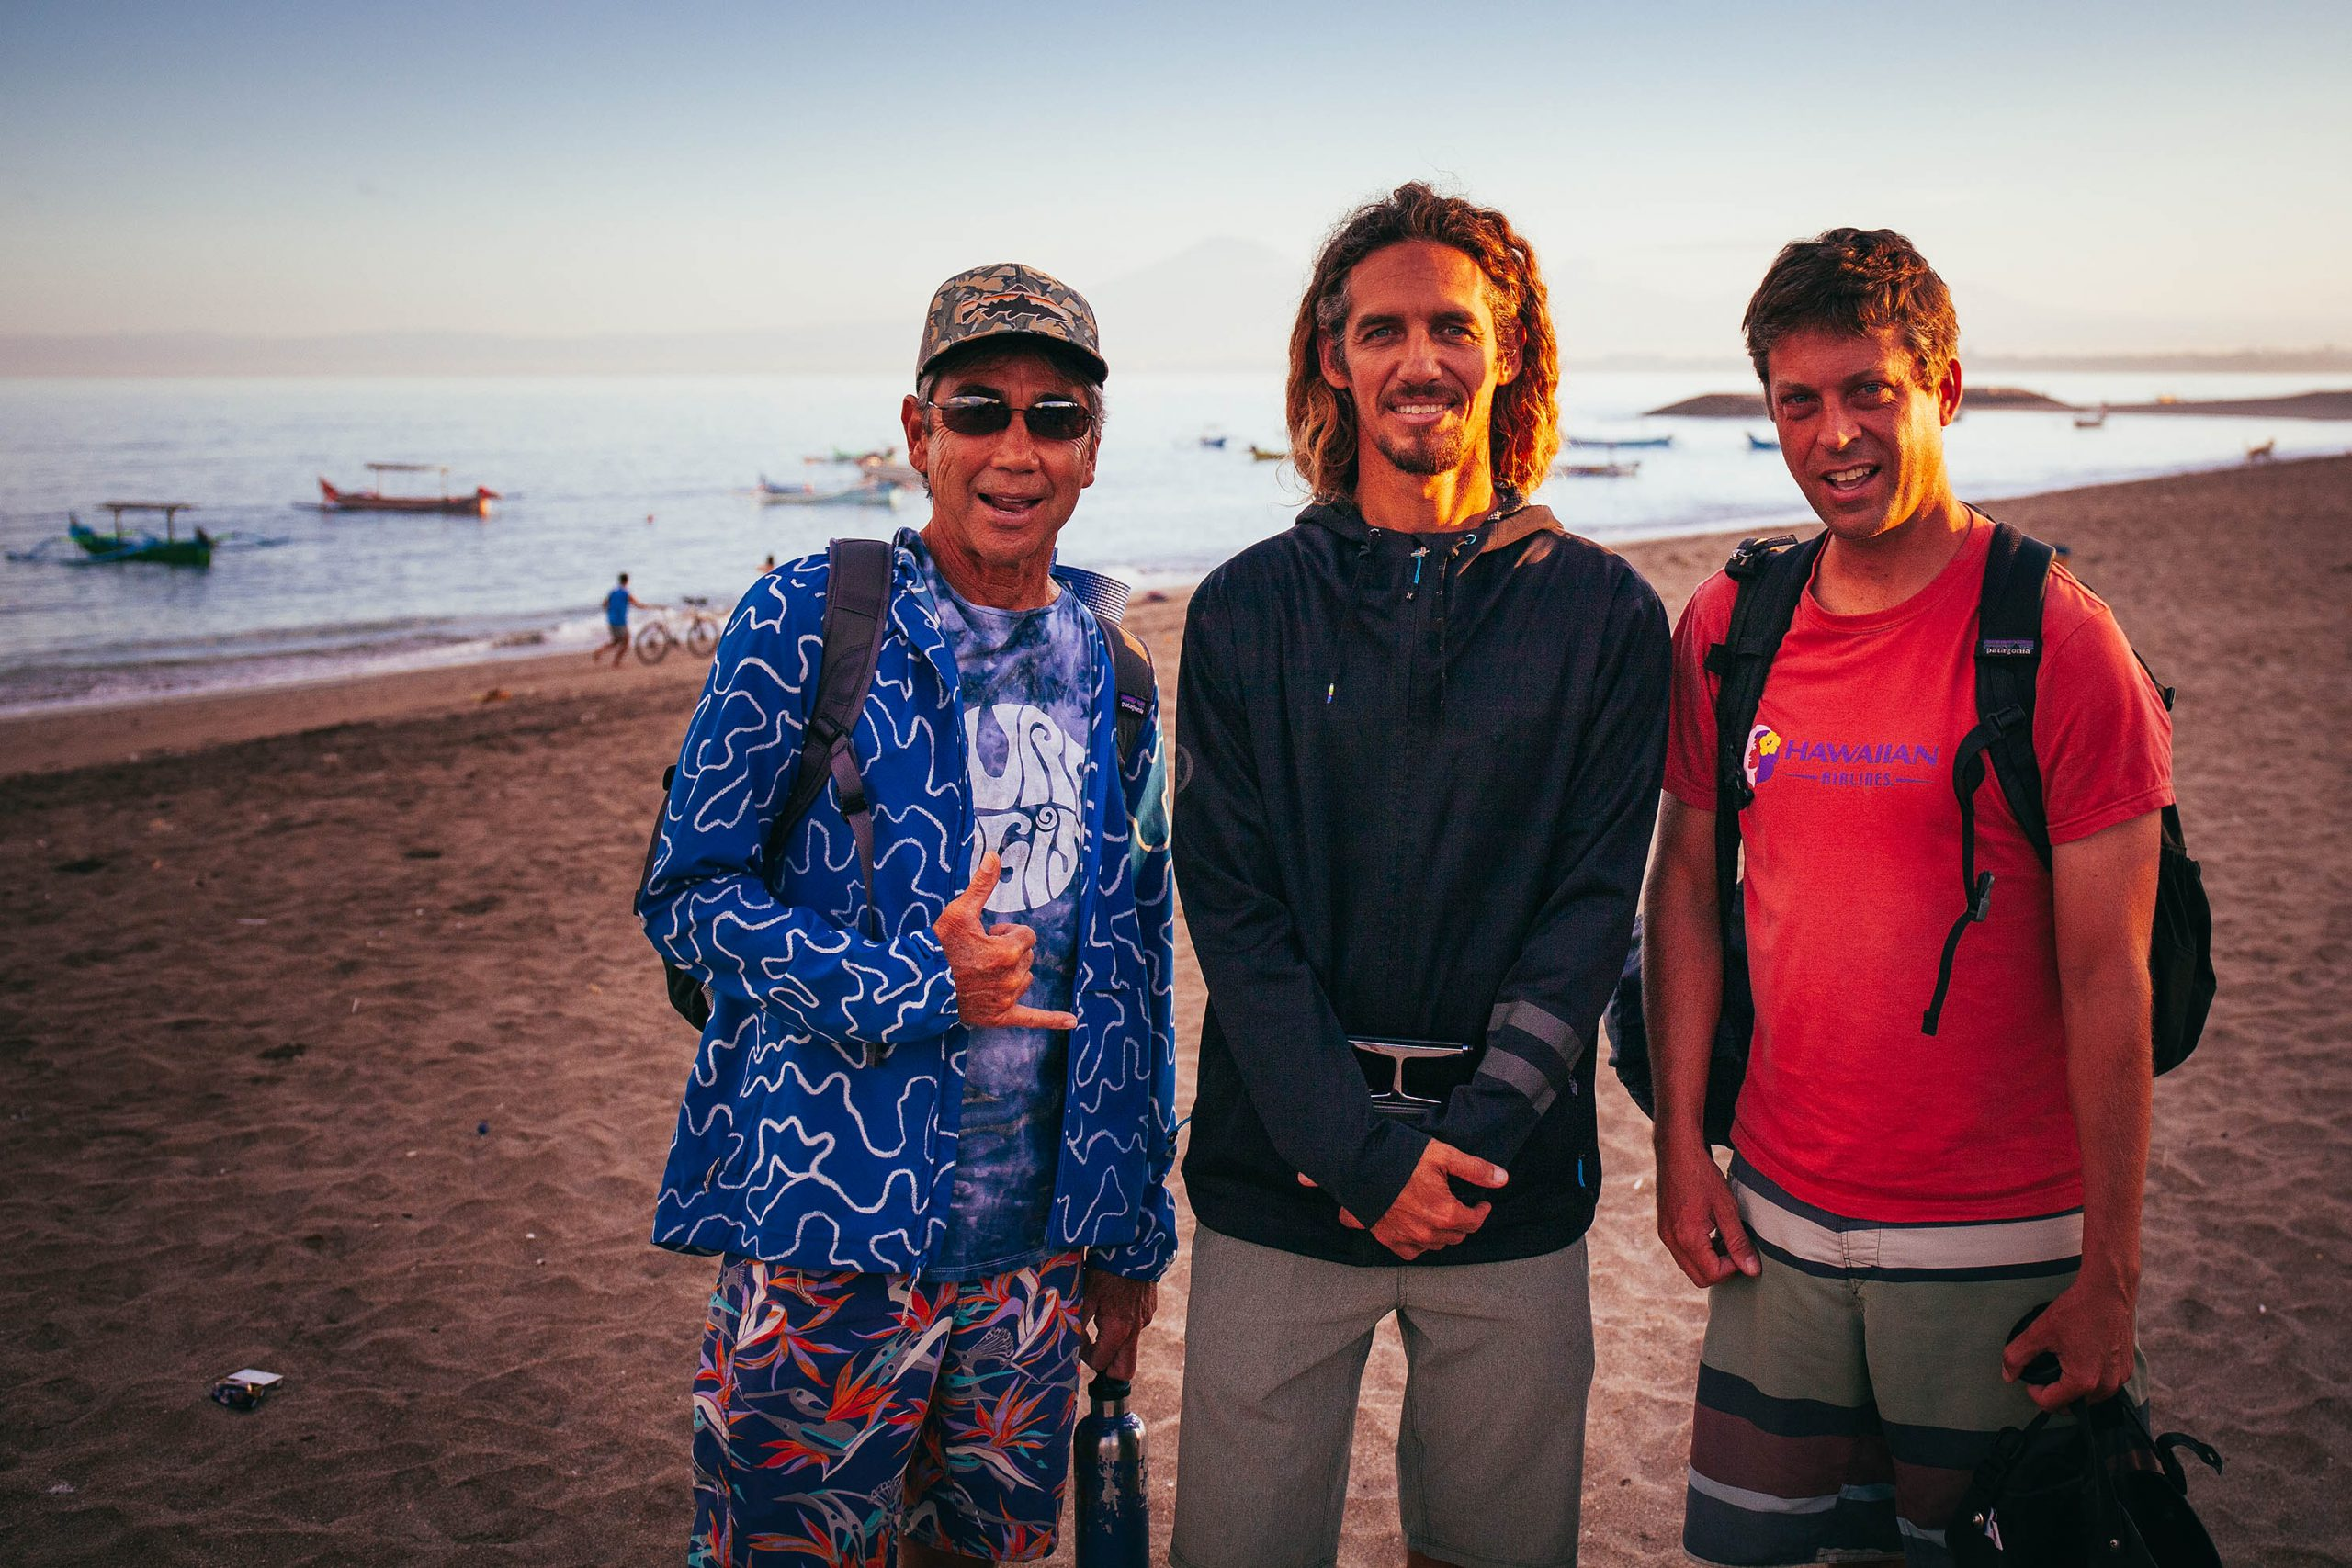 On assignment in Bali with Gerry Lopez and Rob Machado | Photo by Tim Russo